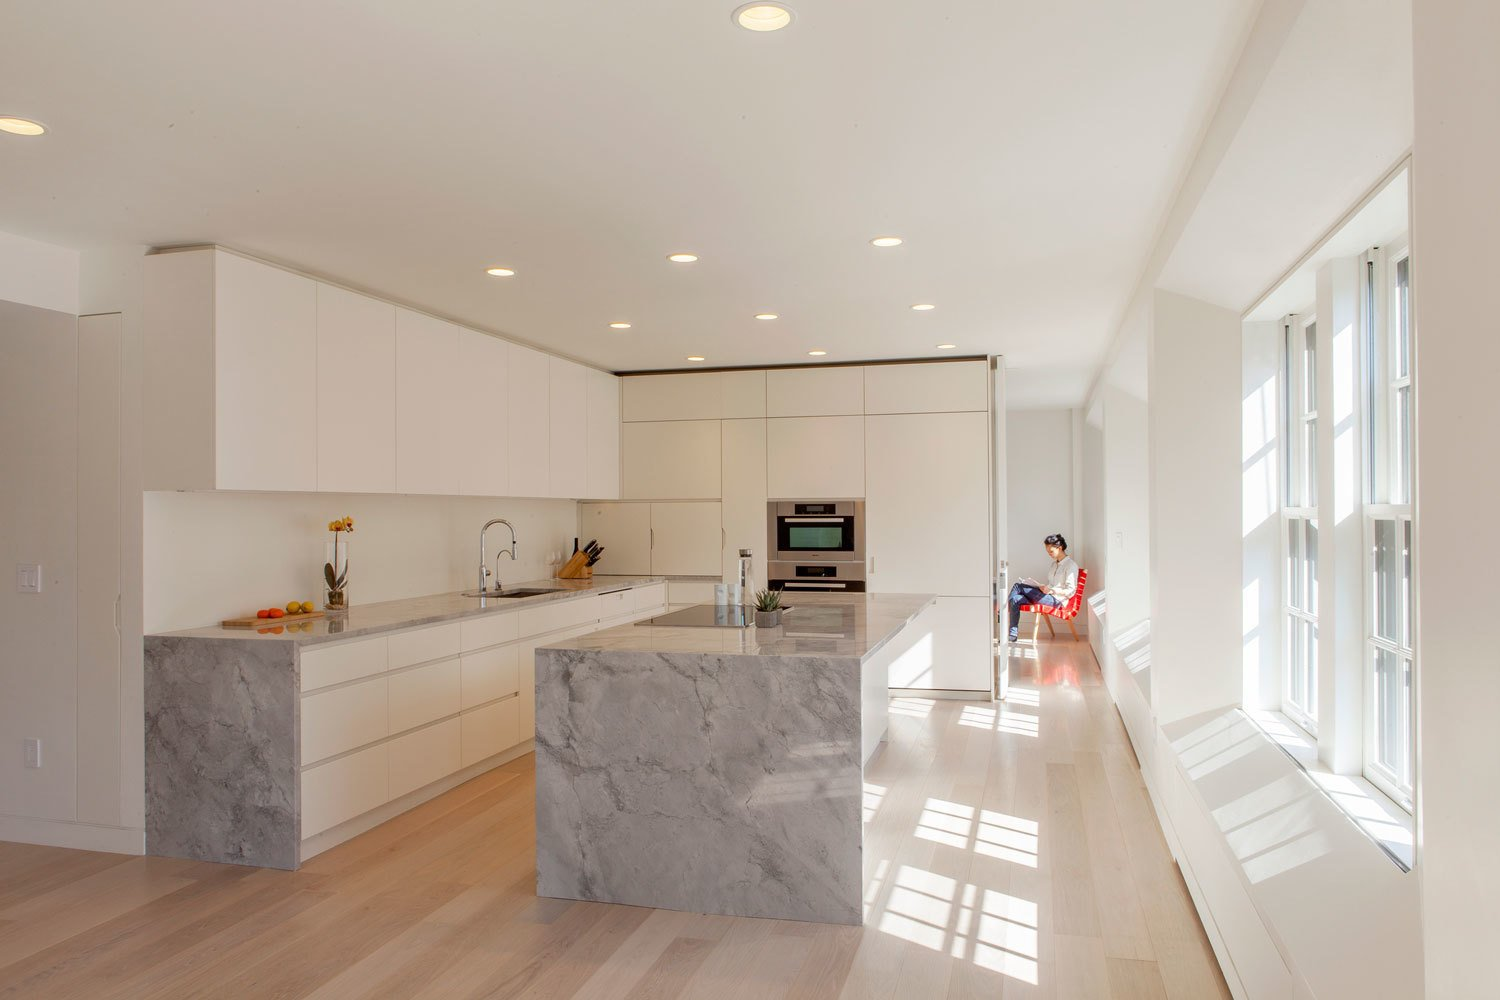 A series of bedrooms was replaced by an open-plan living arrangement. The kitchens are White Fantasy quartzite paired with white lacquered millwork.  Architecture Firm You Should Know: Höweler + Yoon by Allie Weiss